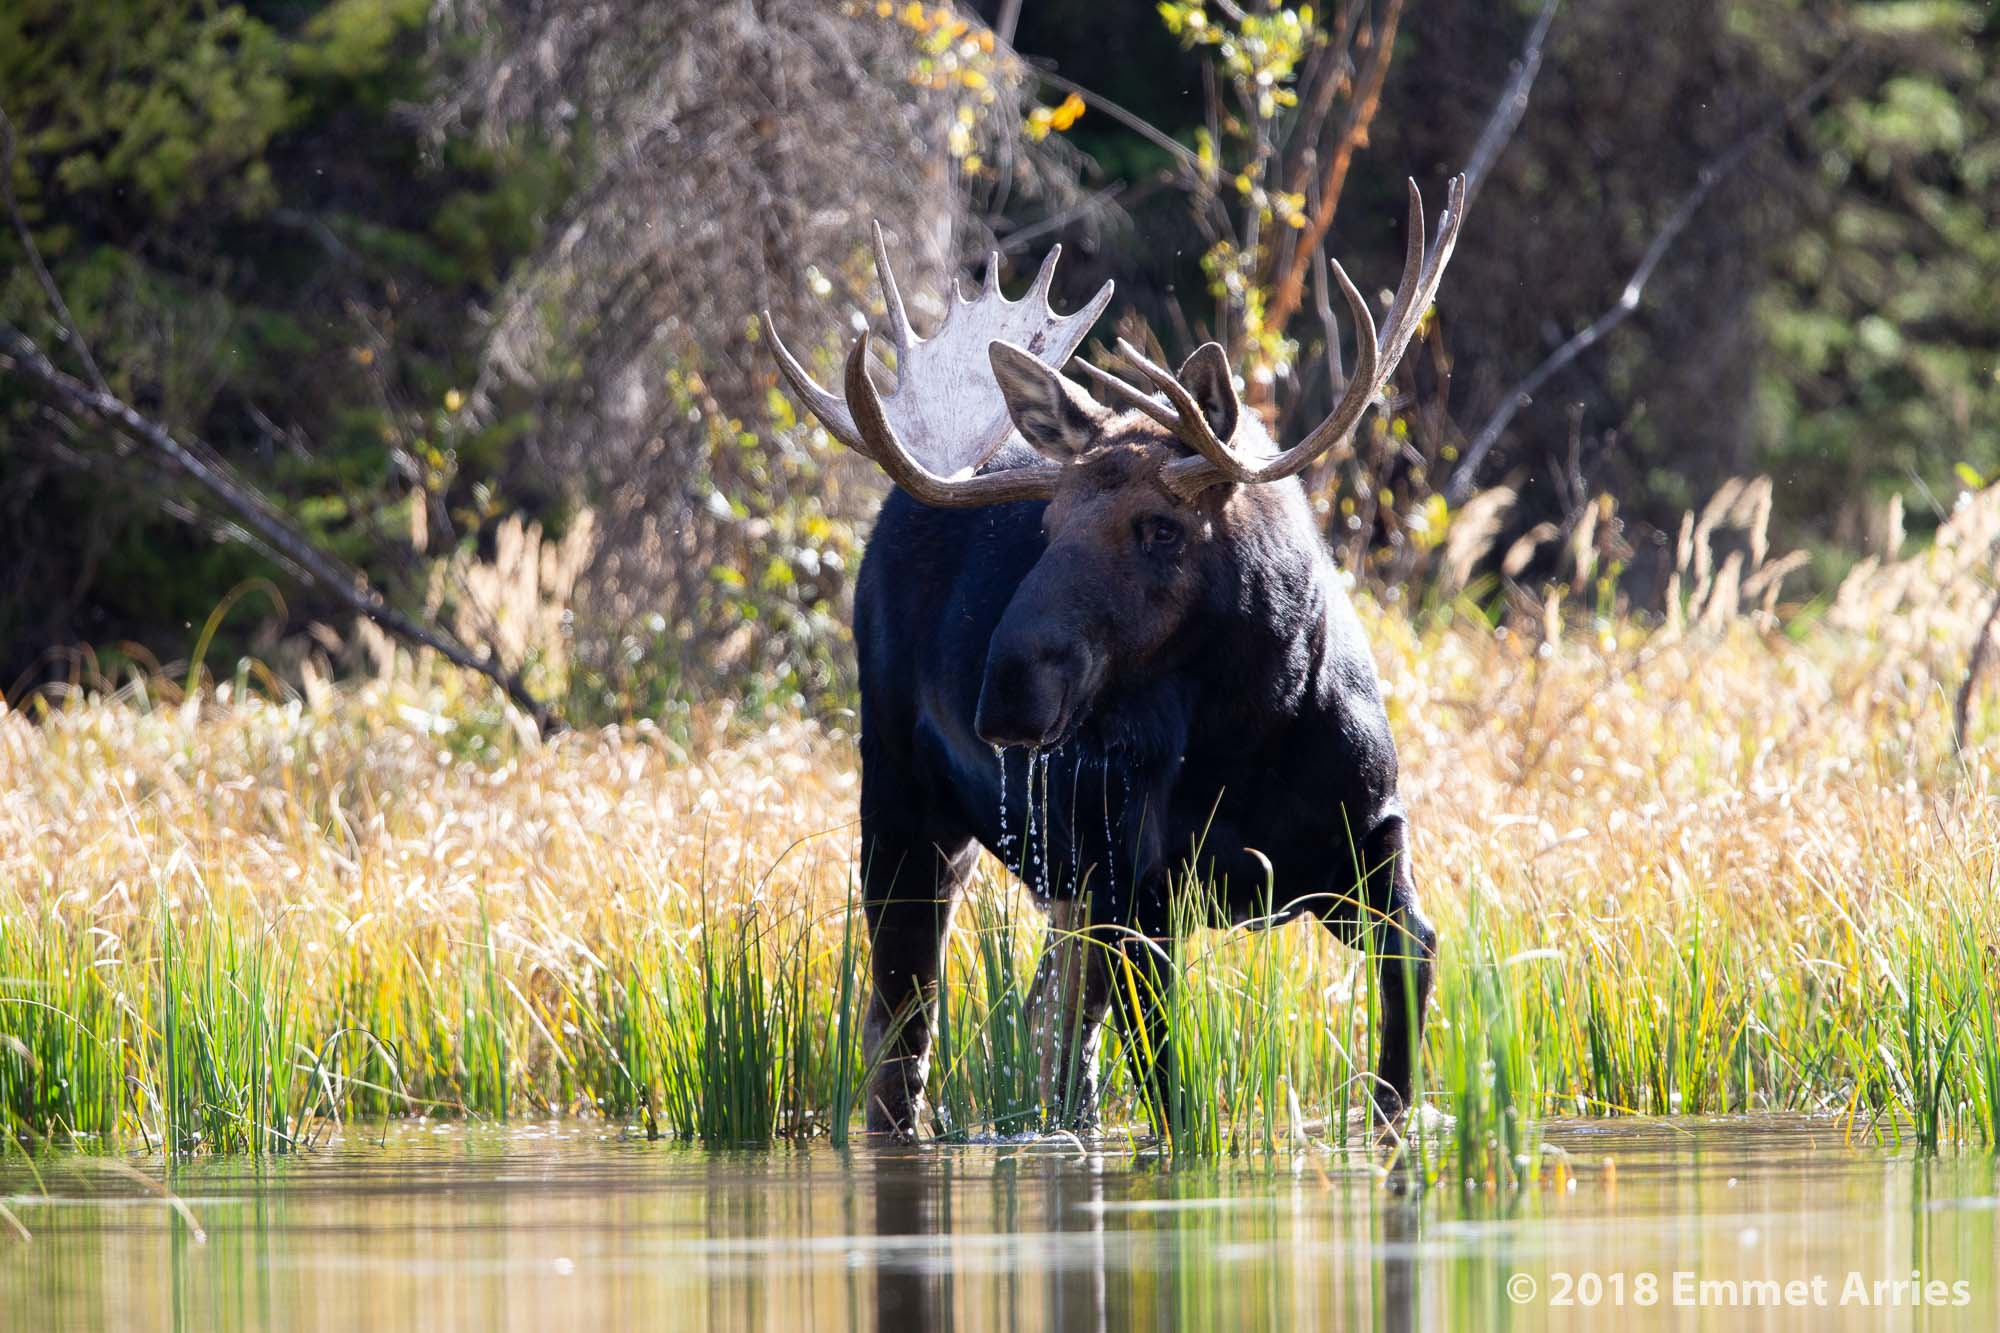 Water drips from a bull moose as he lifts his head after taking a drink out of a pond in Grand Teton National Park.